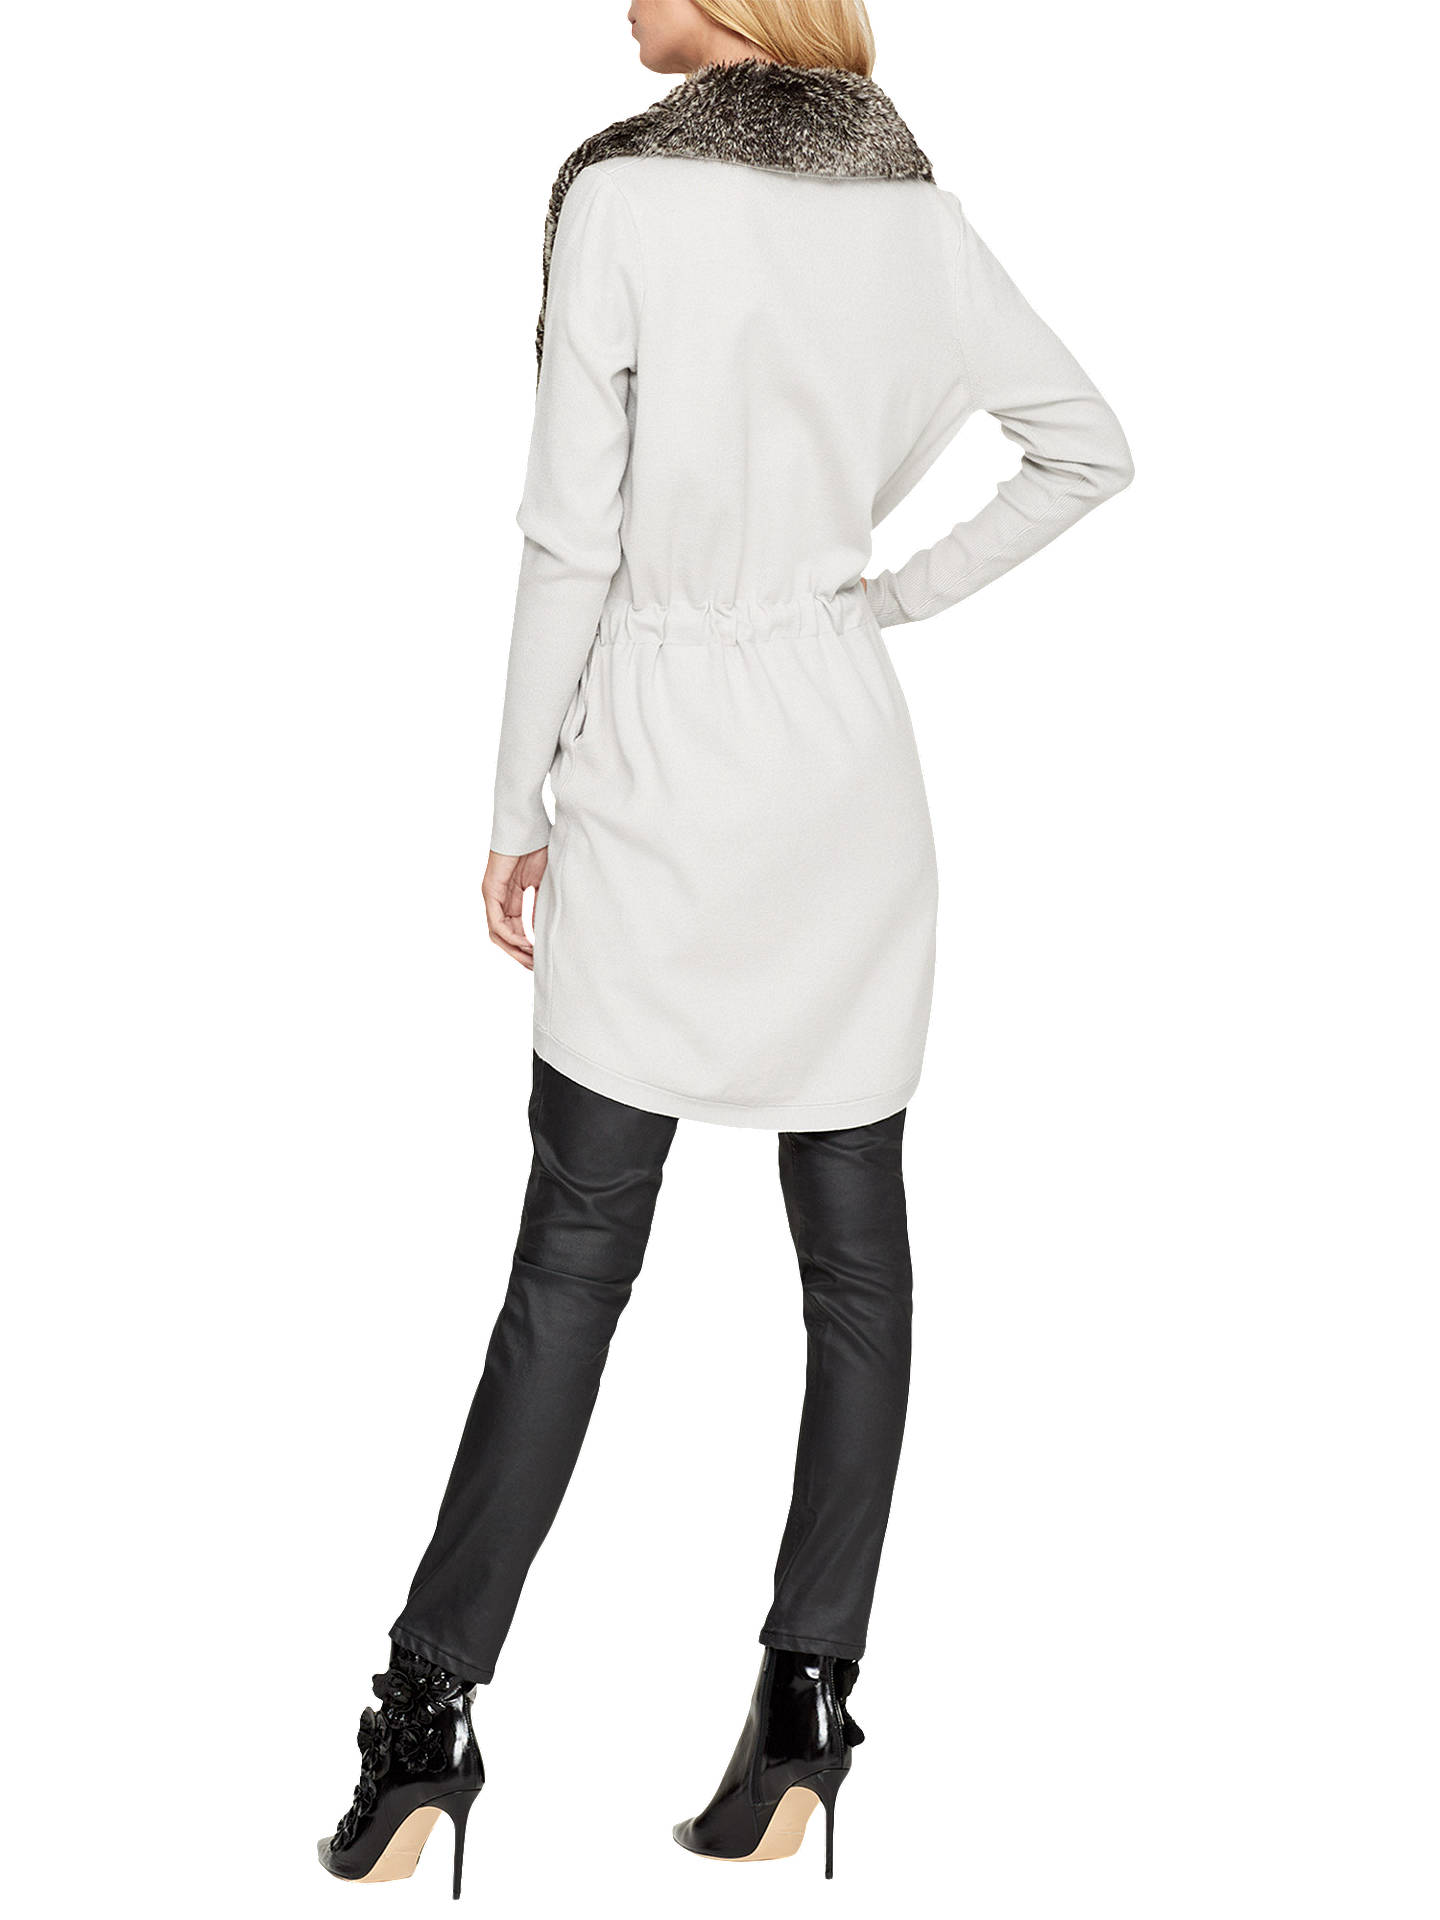 BuyDamsel in a Dress Detachable Faux Fur Collar Cardigan, Winter White, 8 Online at johnlewis.com